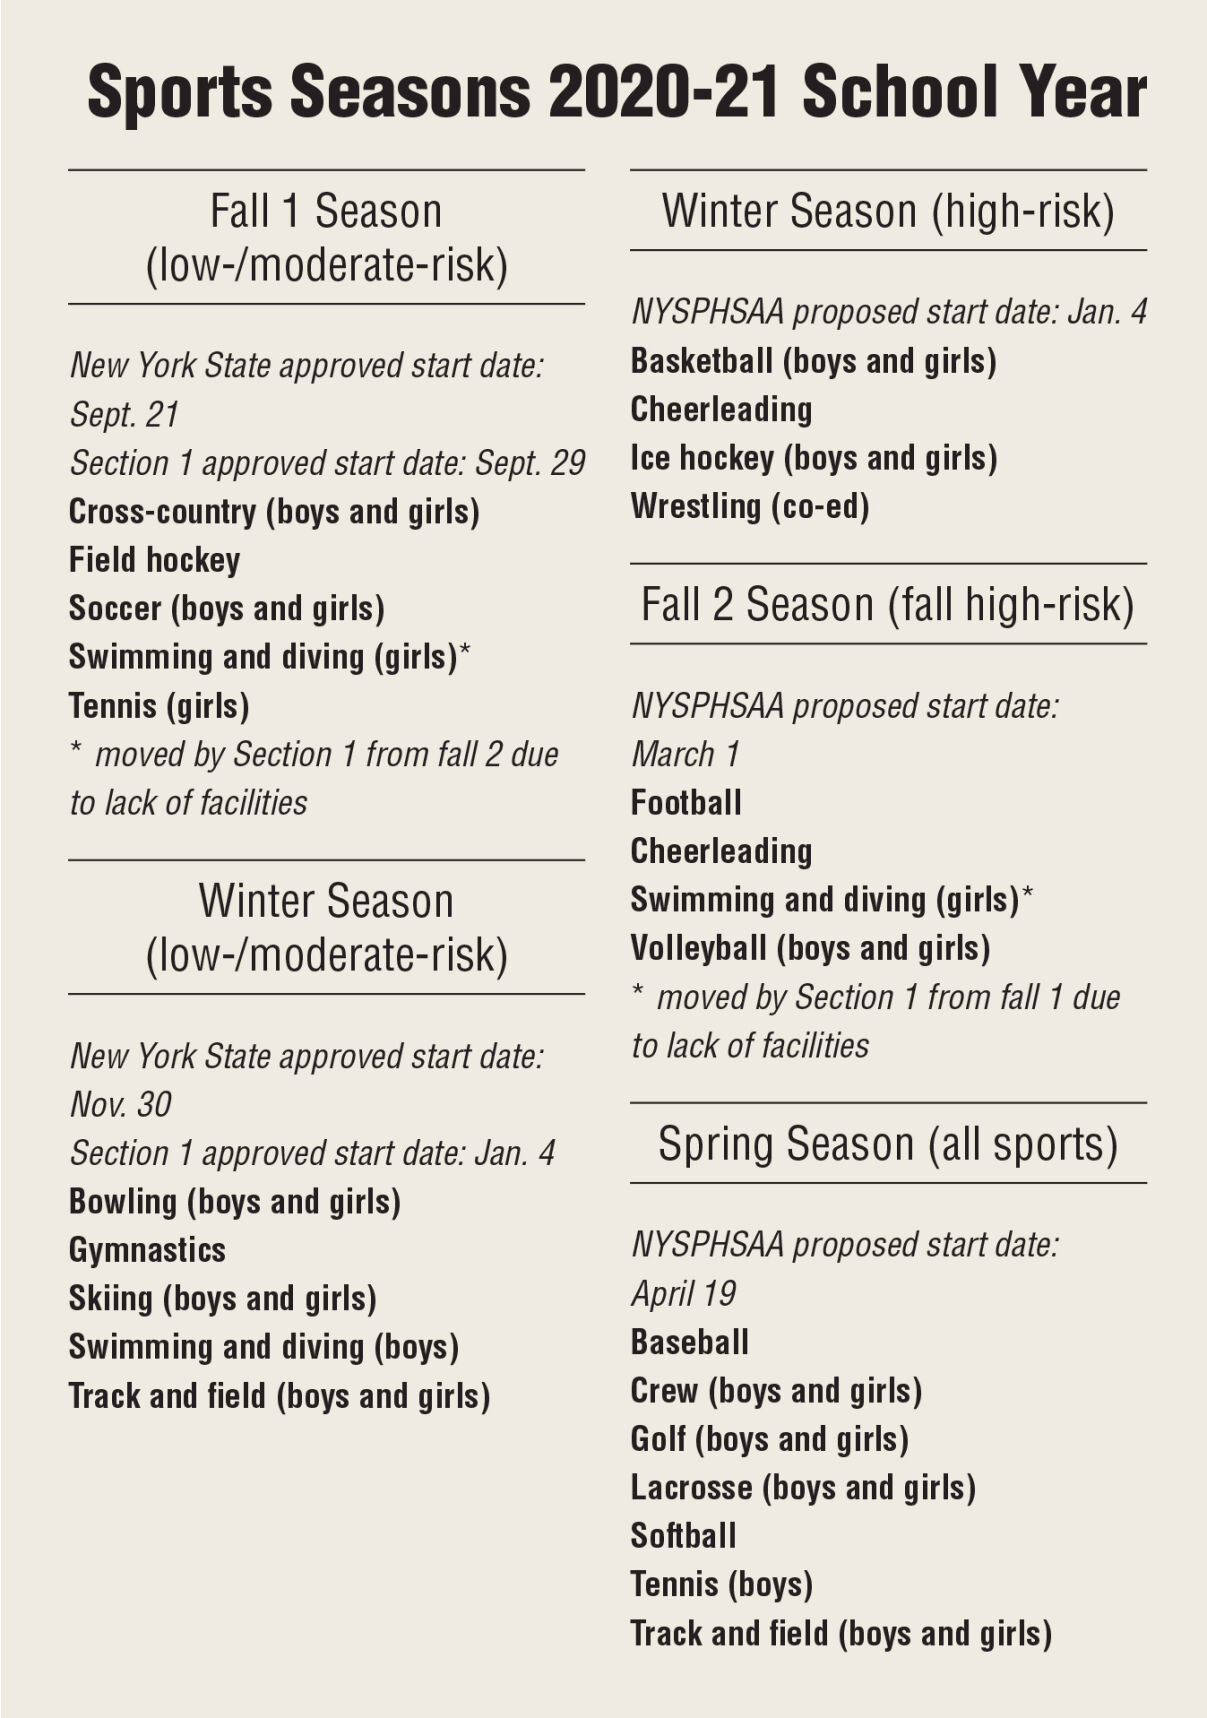 Sports seasons chart image